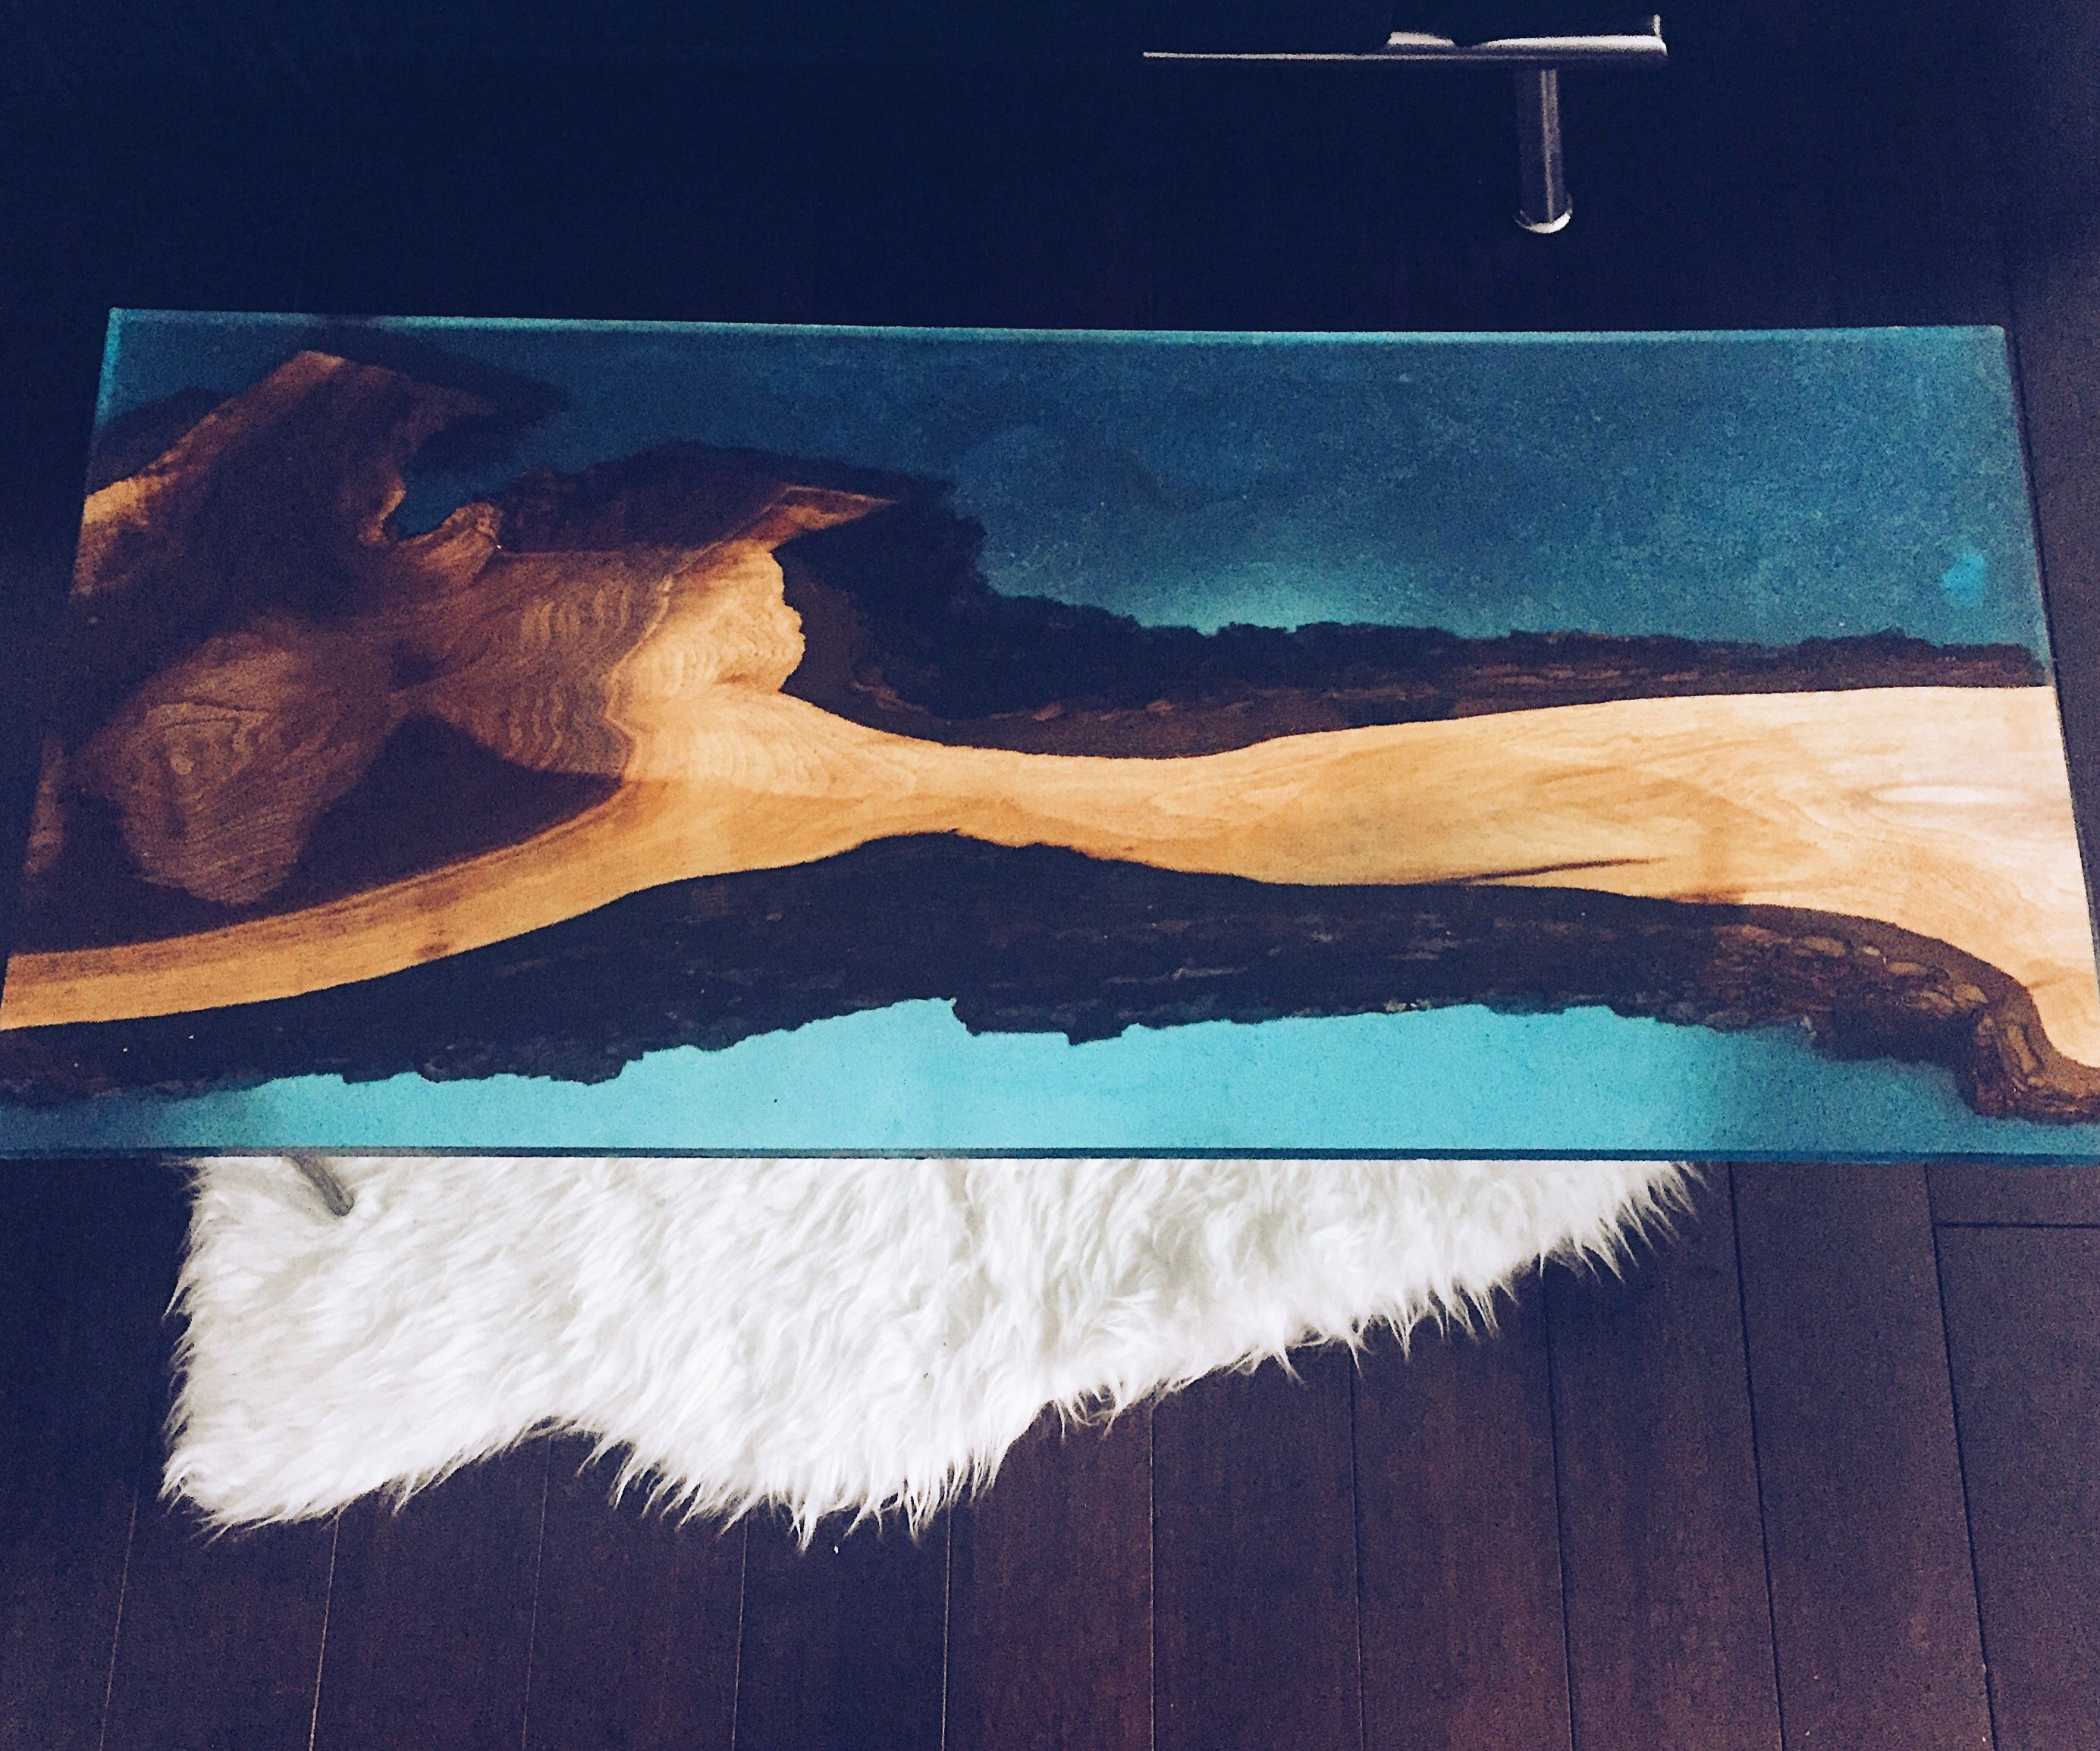 Resin Wood Coffee Table: 9 Steps (with Pictures)